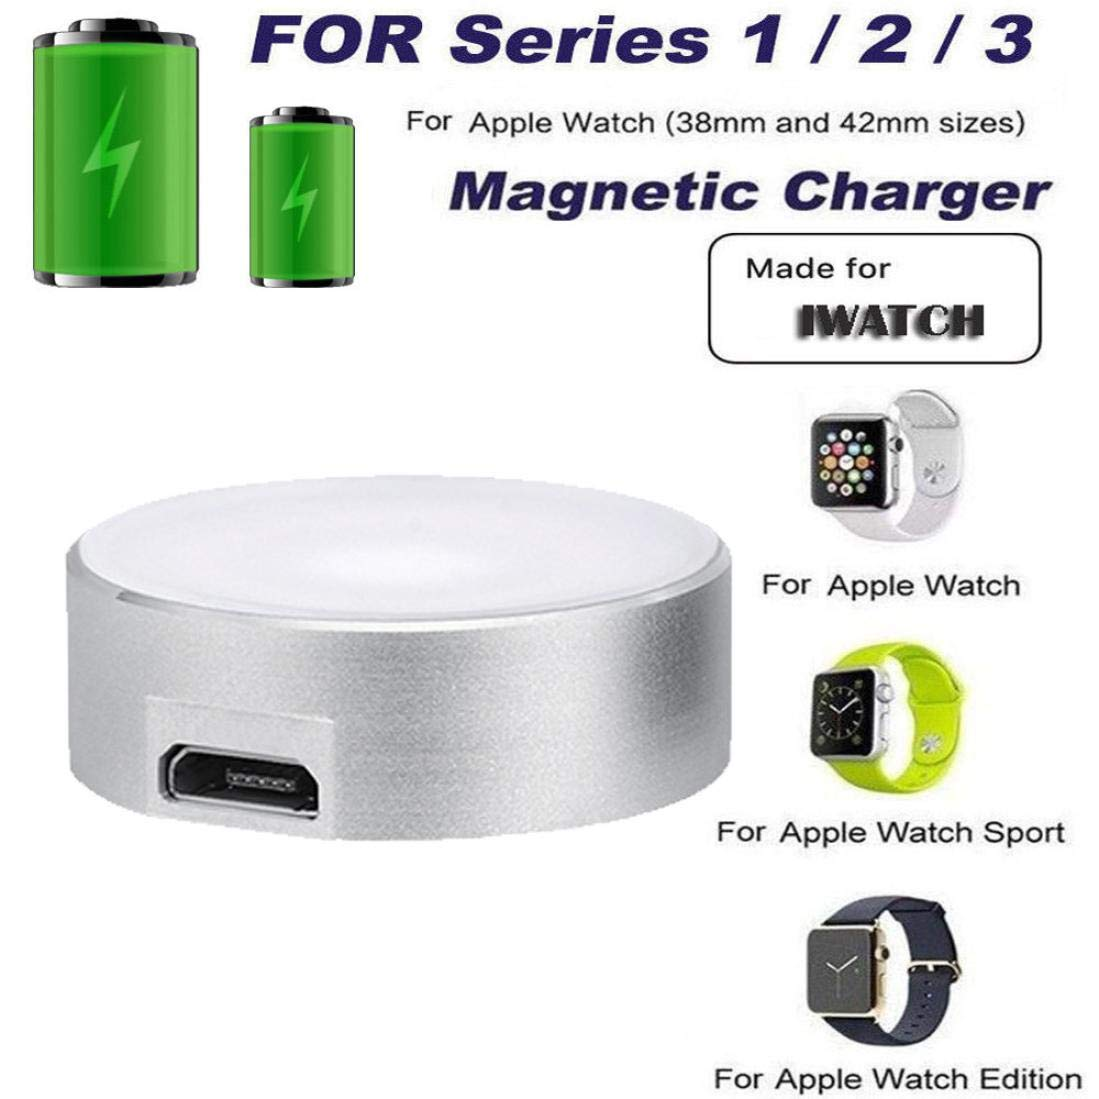 Botrong Charger, Compatible with Apple Watch Series 1/2/3/ iWatch Magnetic Charger Charging Pad Cable 38/42mm (Silver)